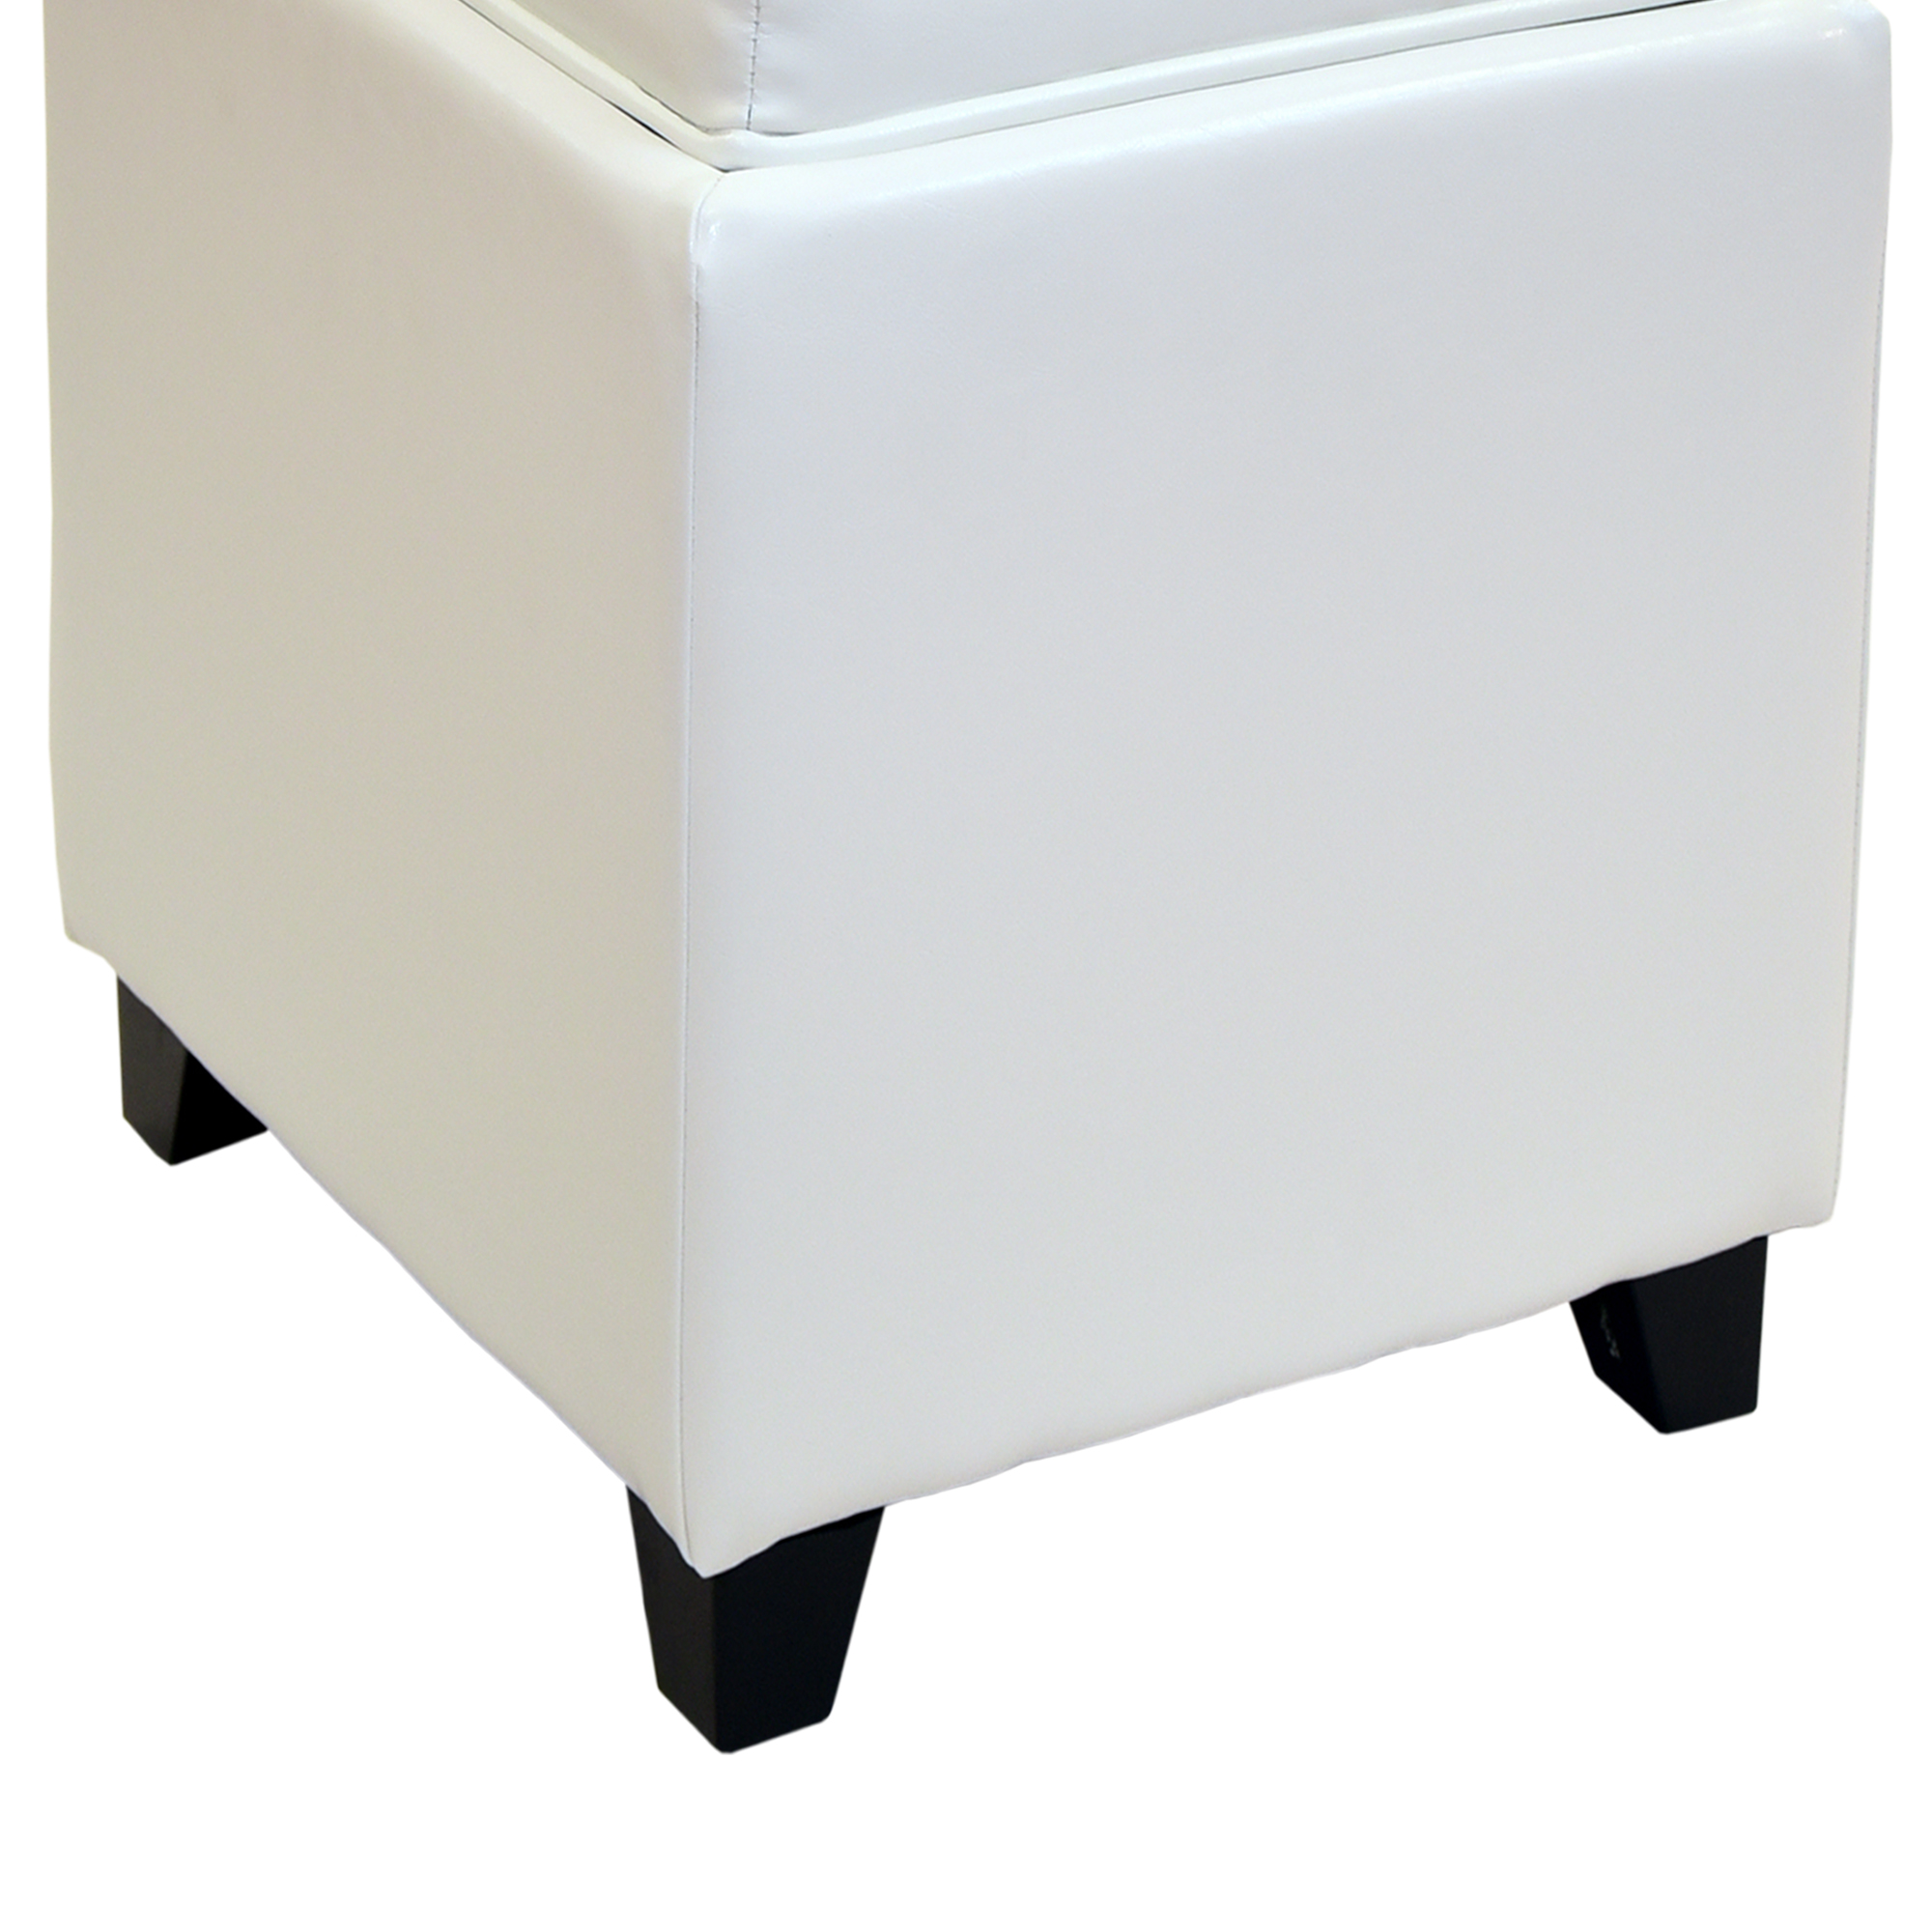 Armen Living Rainbow Contemporary Storage Ottoman With Tray in White Bonded Leather